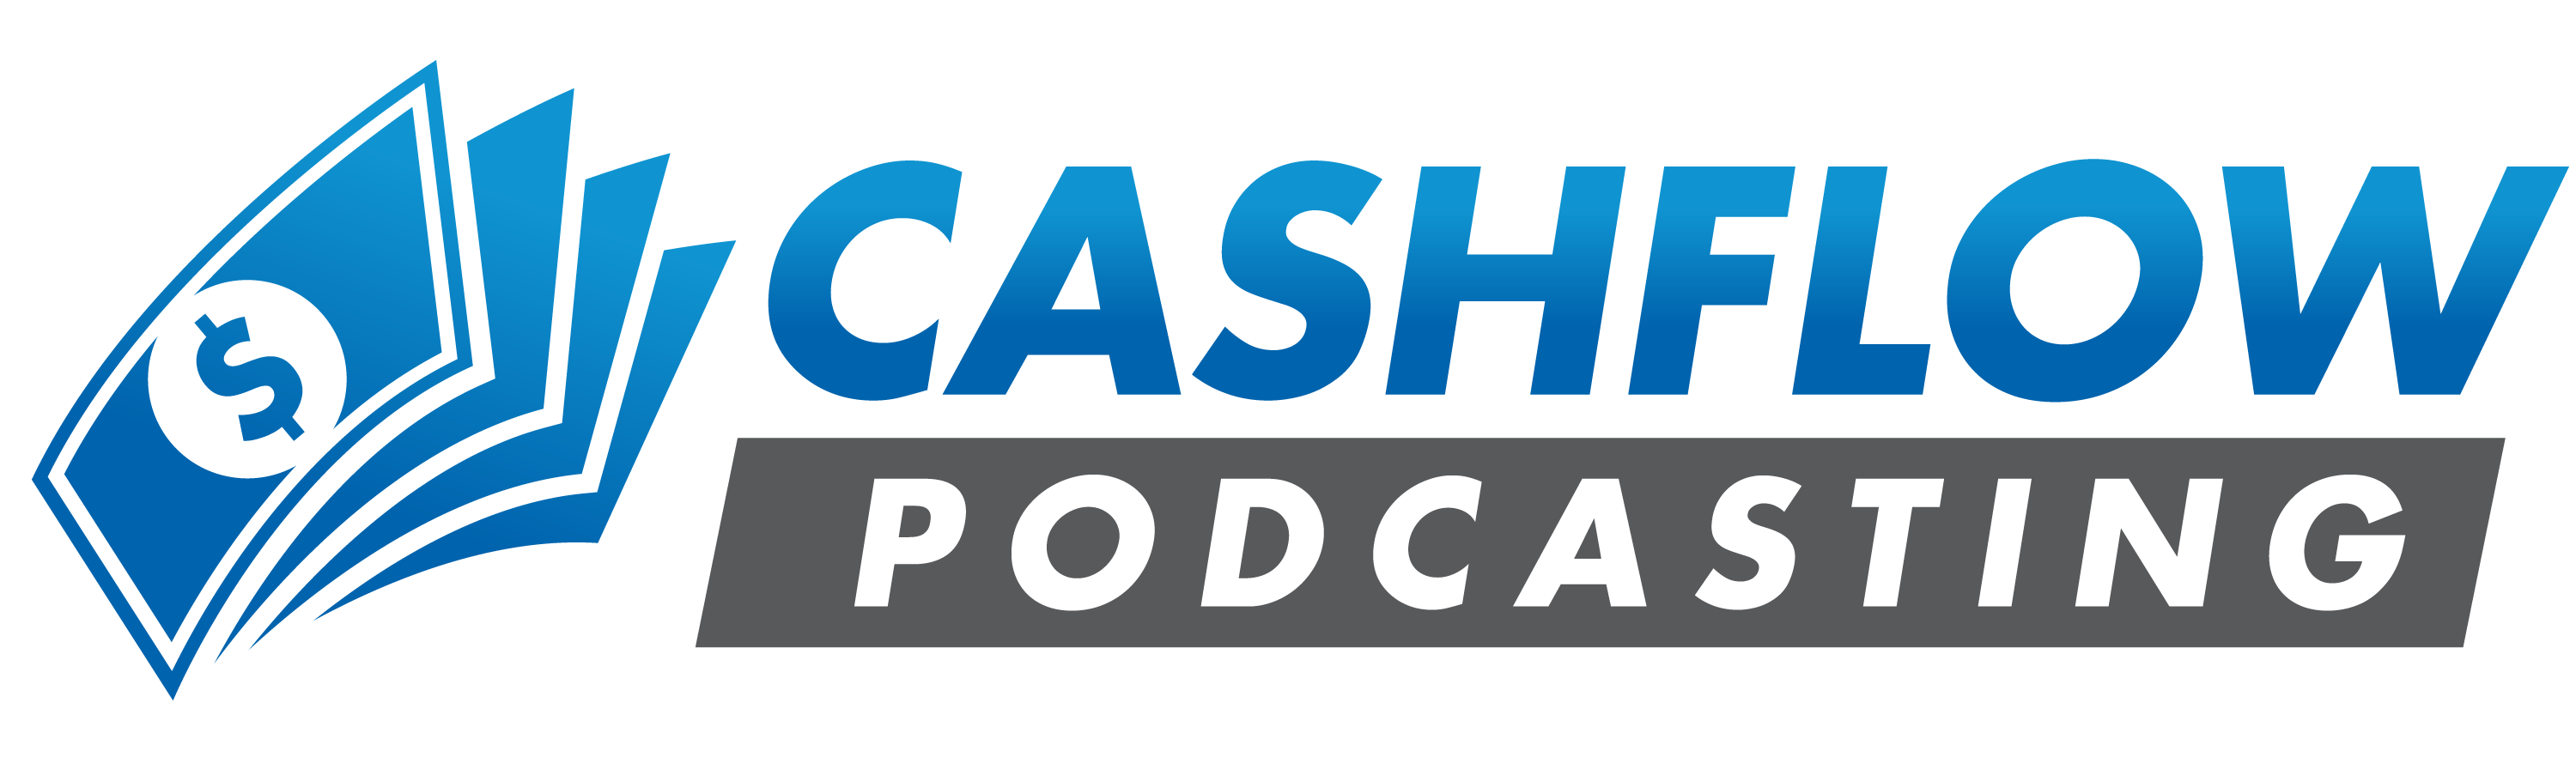 Cashflow Podcasting